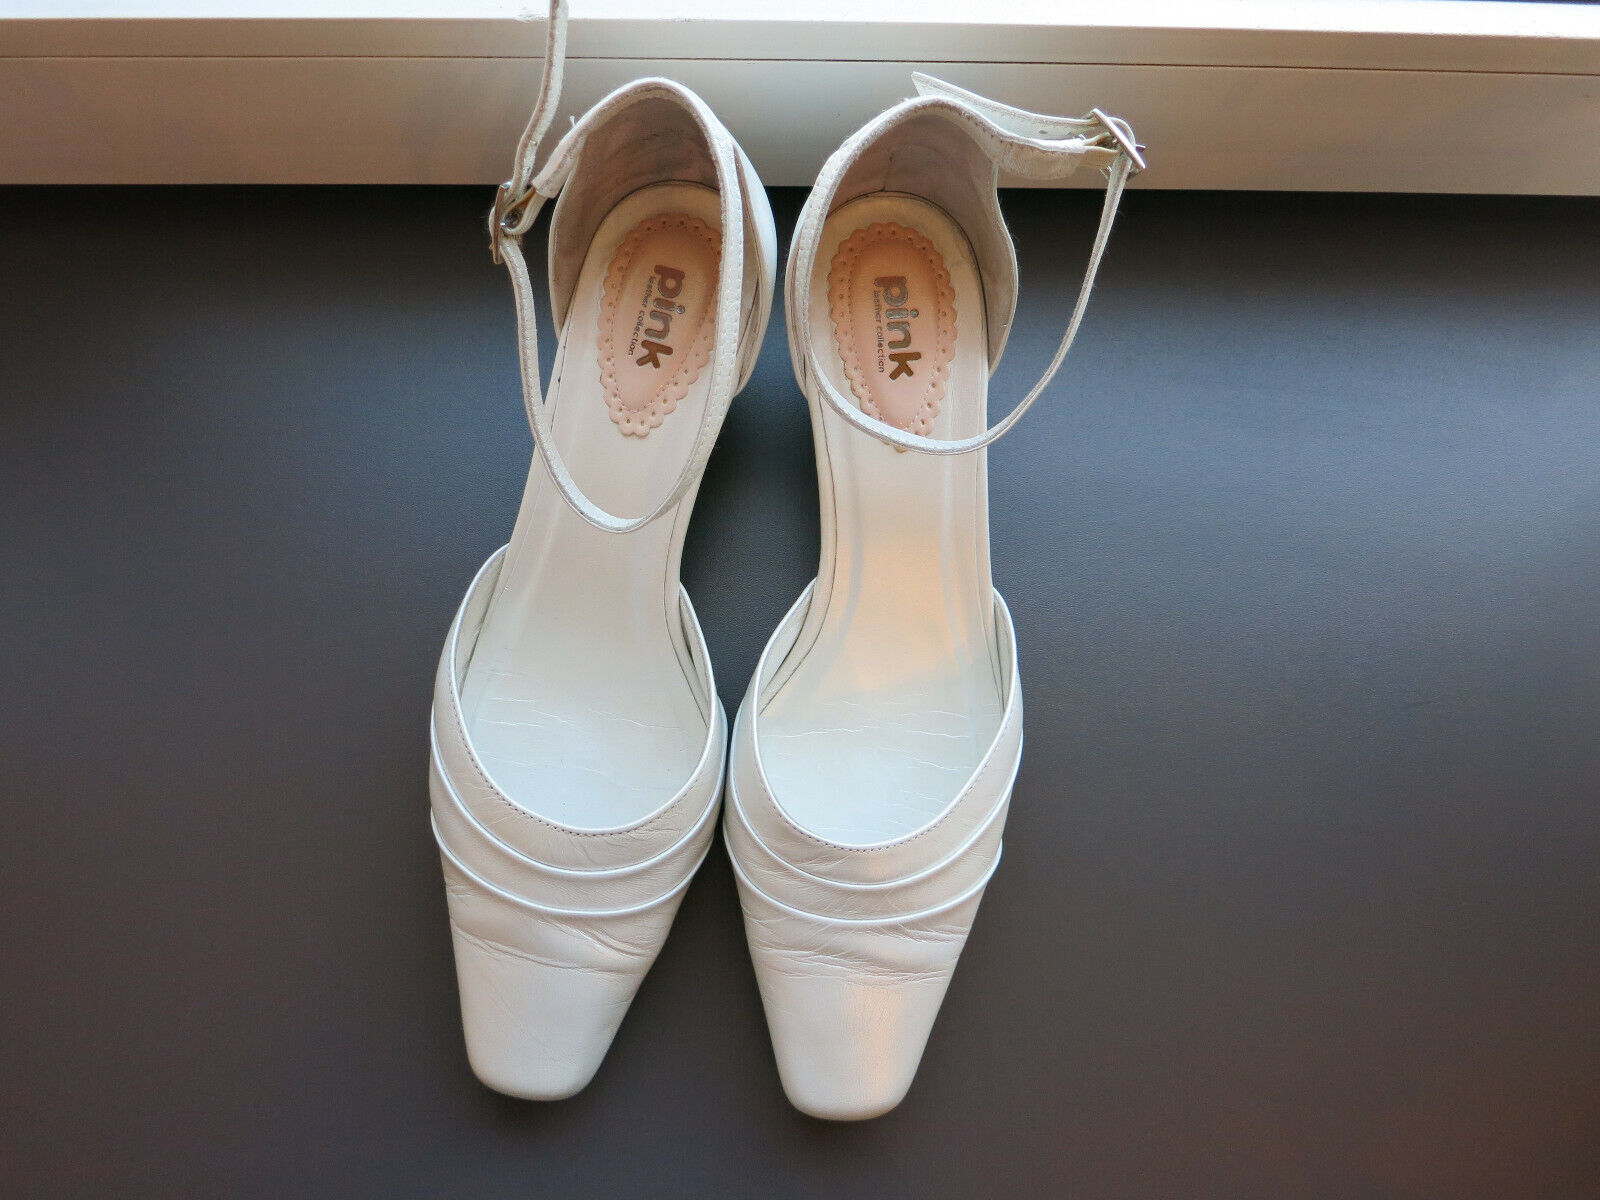 ❤❤❤ Bridal Shoes Wedding Size 40 in Ivory by Pink Paradox London ❤❤❤